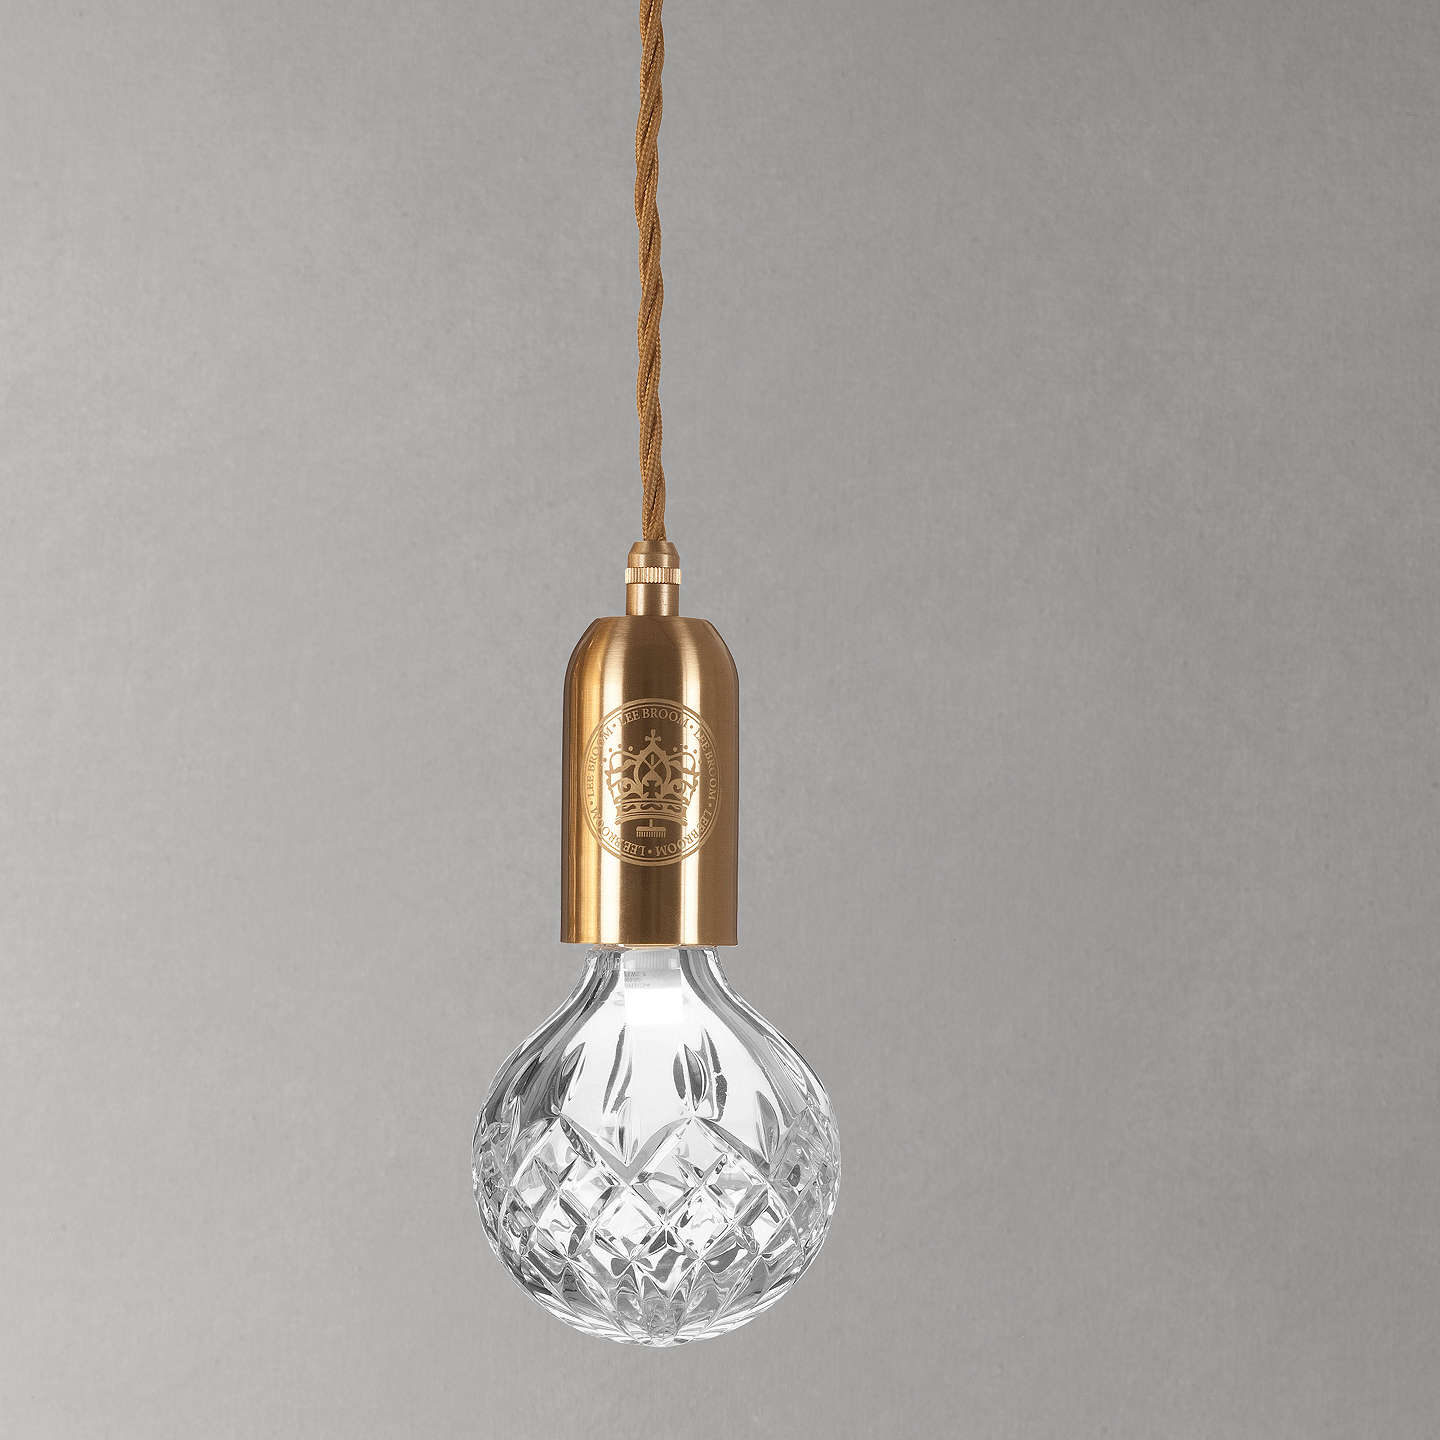 liara closeup andante preview with led light bn industrial unlit linea lamp di products pendant bulb